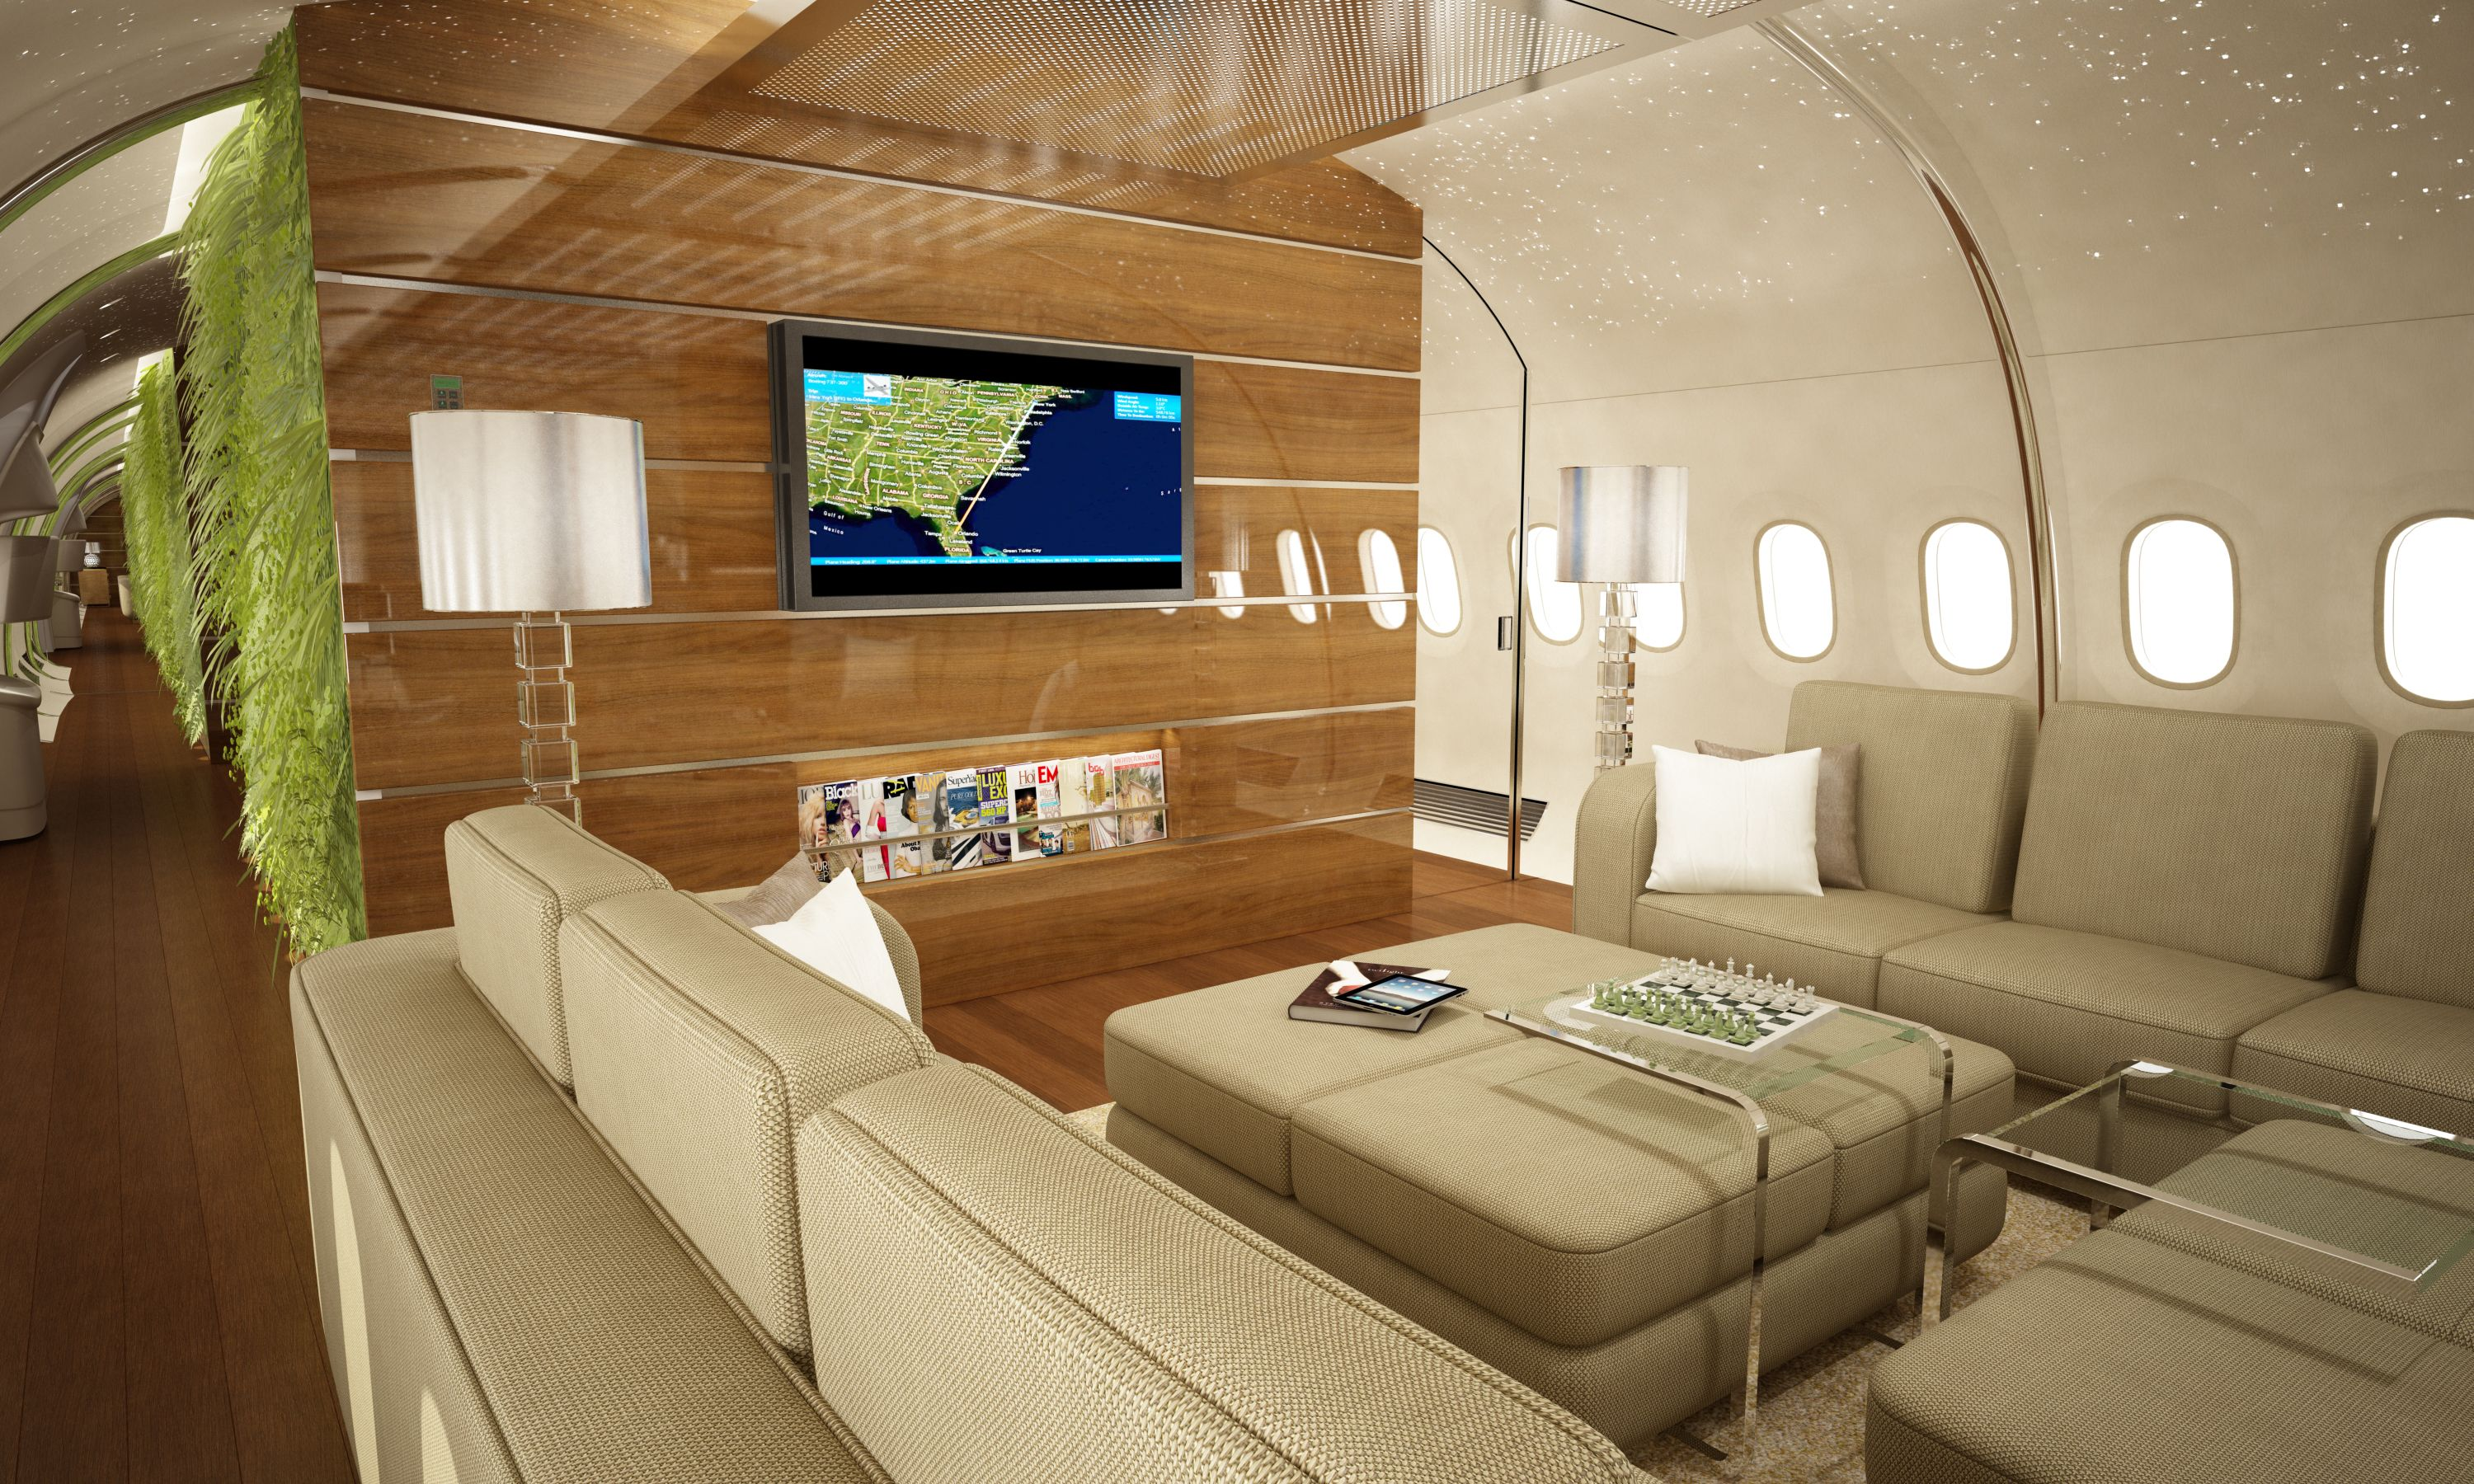 Private jet interior furnished like a vintage train aviation - Find This Pin And More On Private Jet Interiors